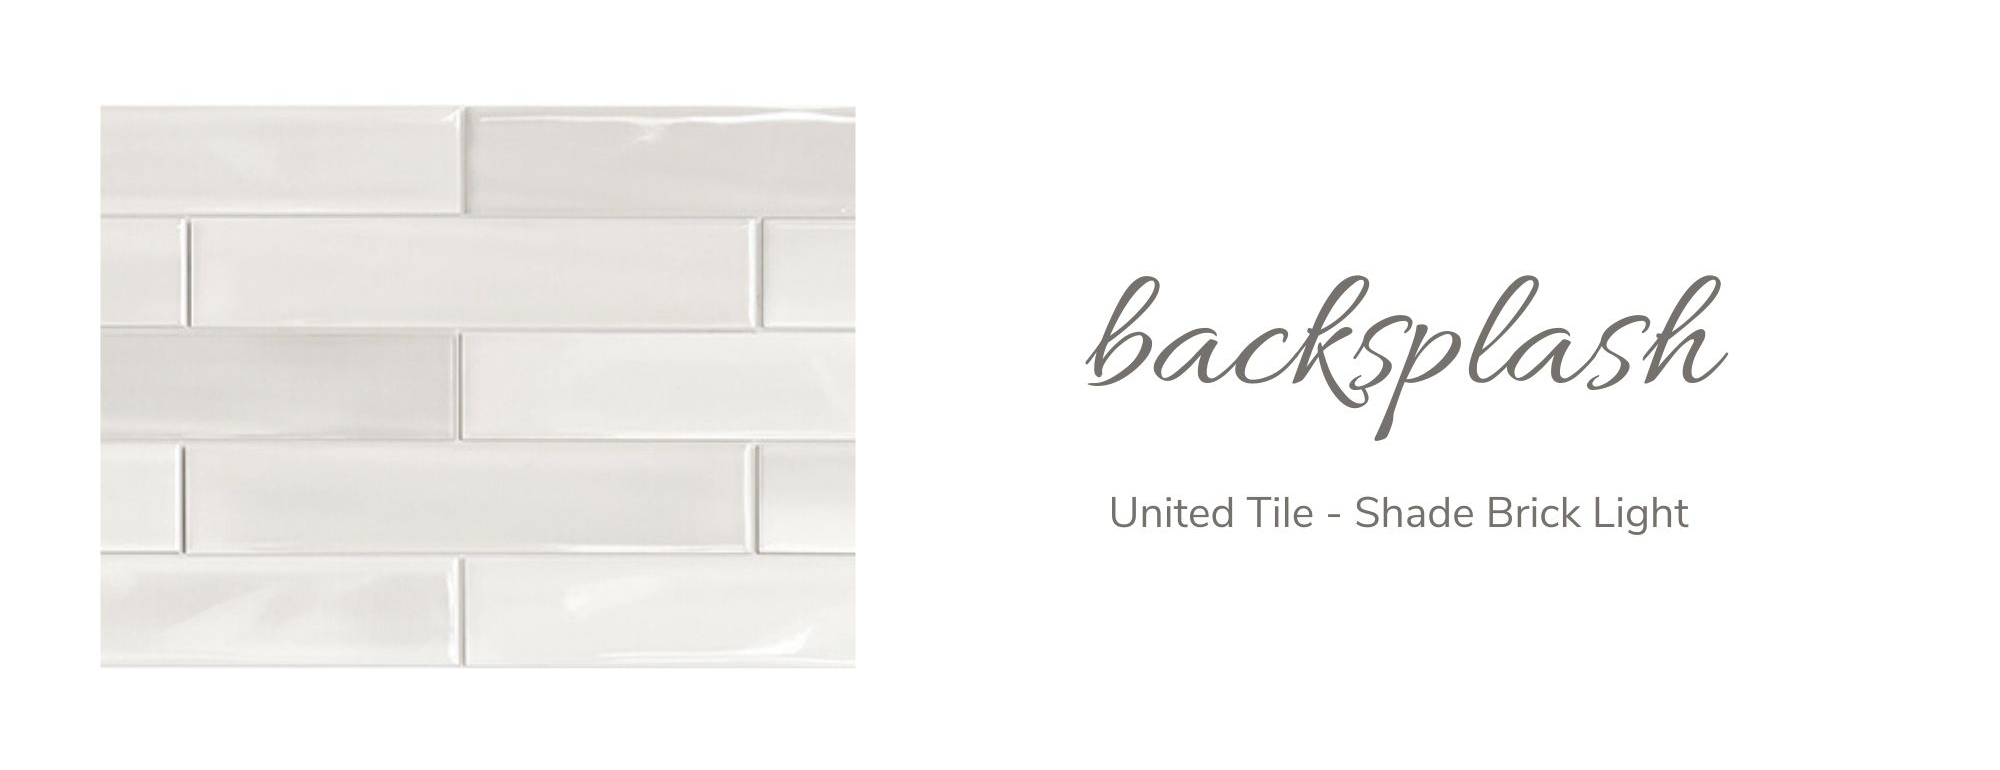 United Tile - Shade Brick Light Backsplash